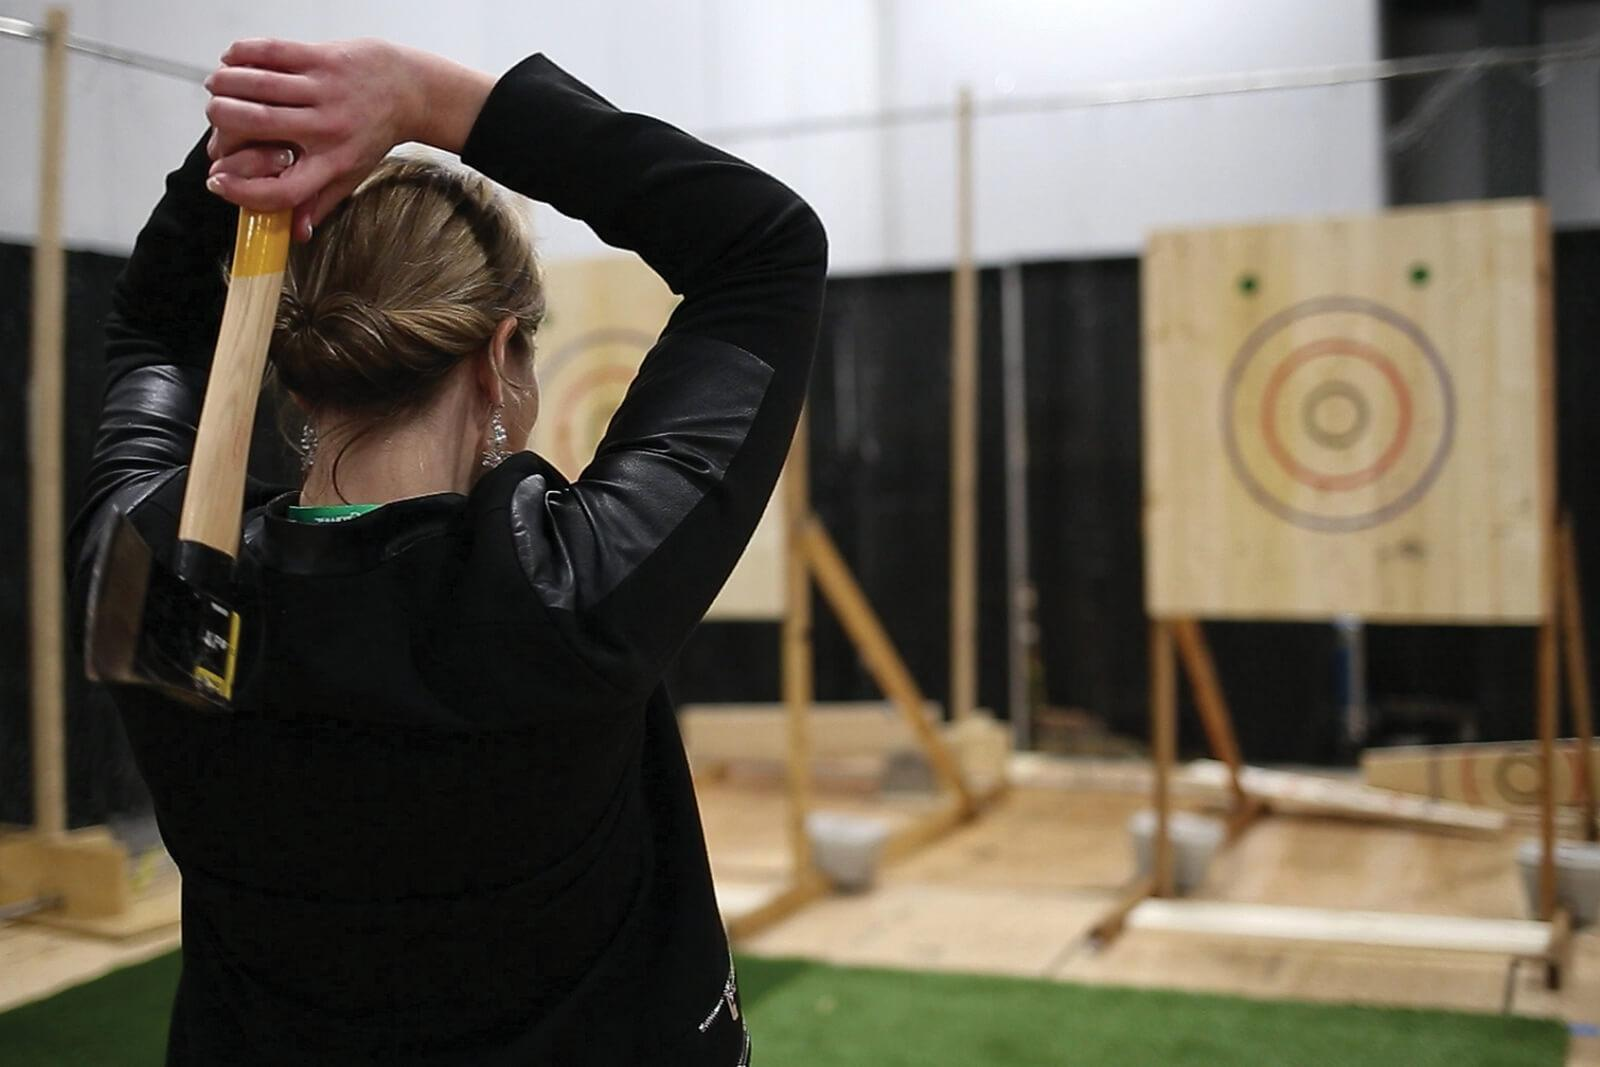 The axe throwing competition was one of four contests added to the GreenTrade Expo show floor this year.